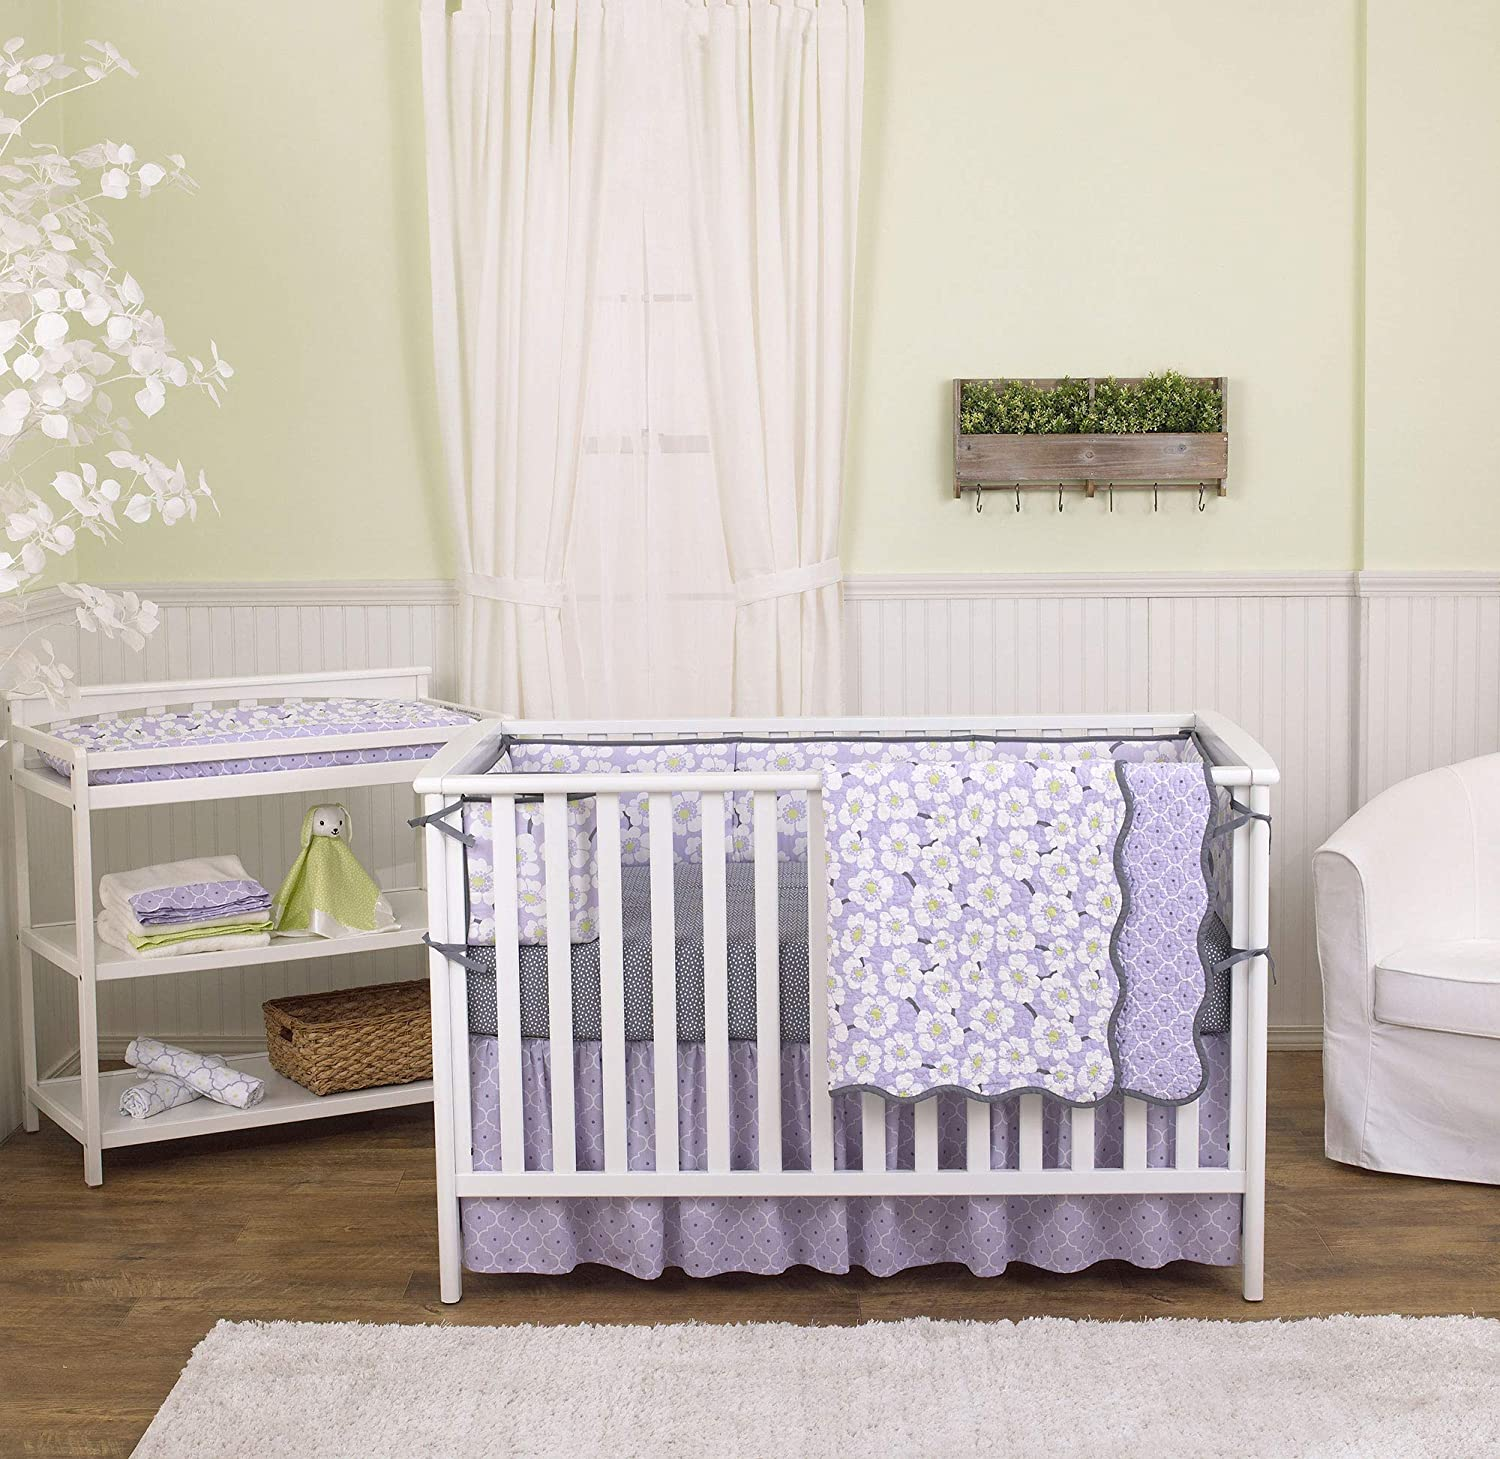 Lavender Poppy Floral 5 Piece Crib Bedding Set with Bumper by Balboa Baby by Balboa Baby   B07MTQJ74X